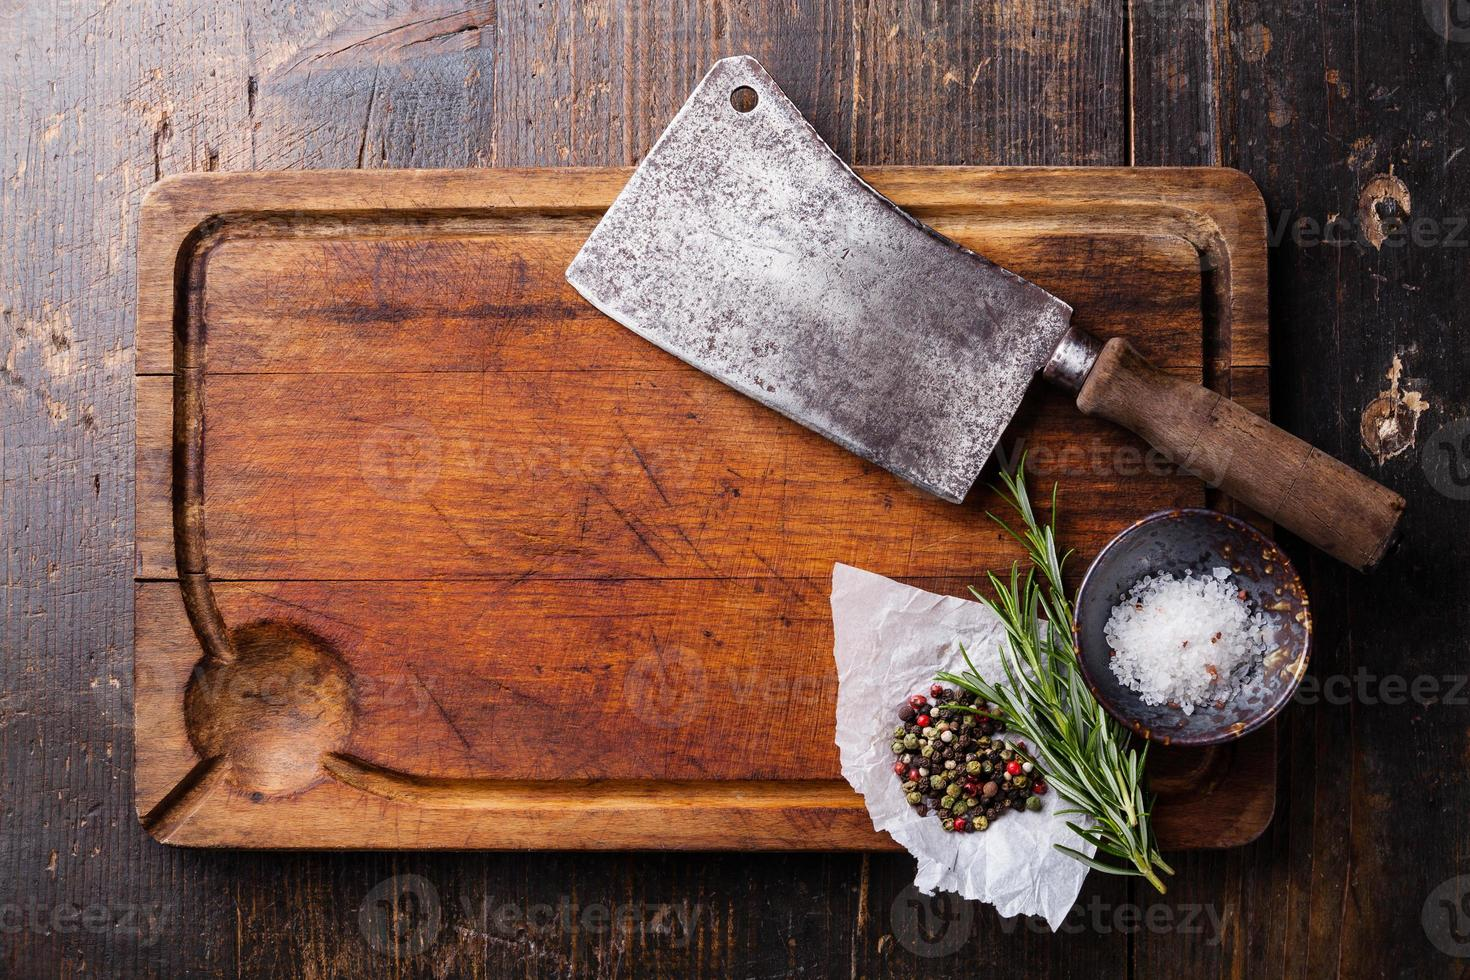 Chopping board, seasonings and meat cleaver on dark wooden background photo